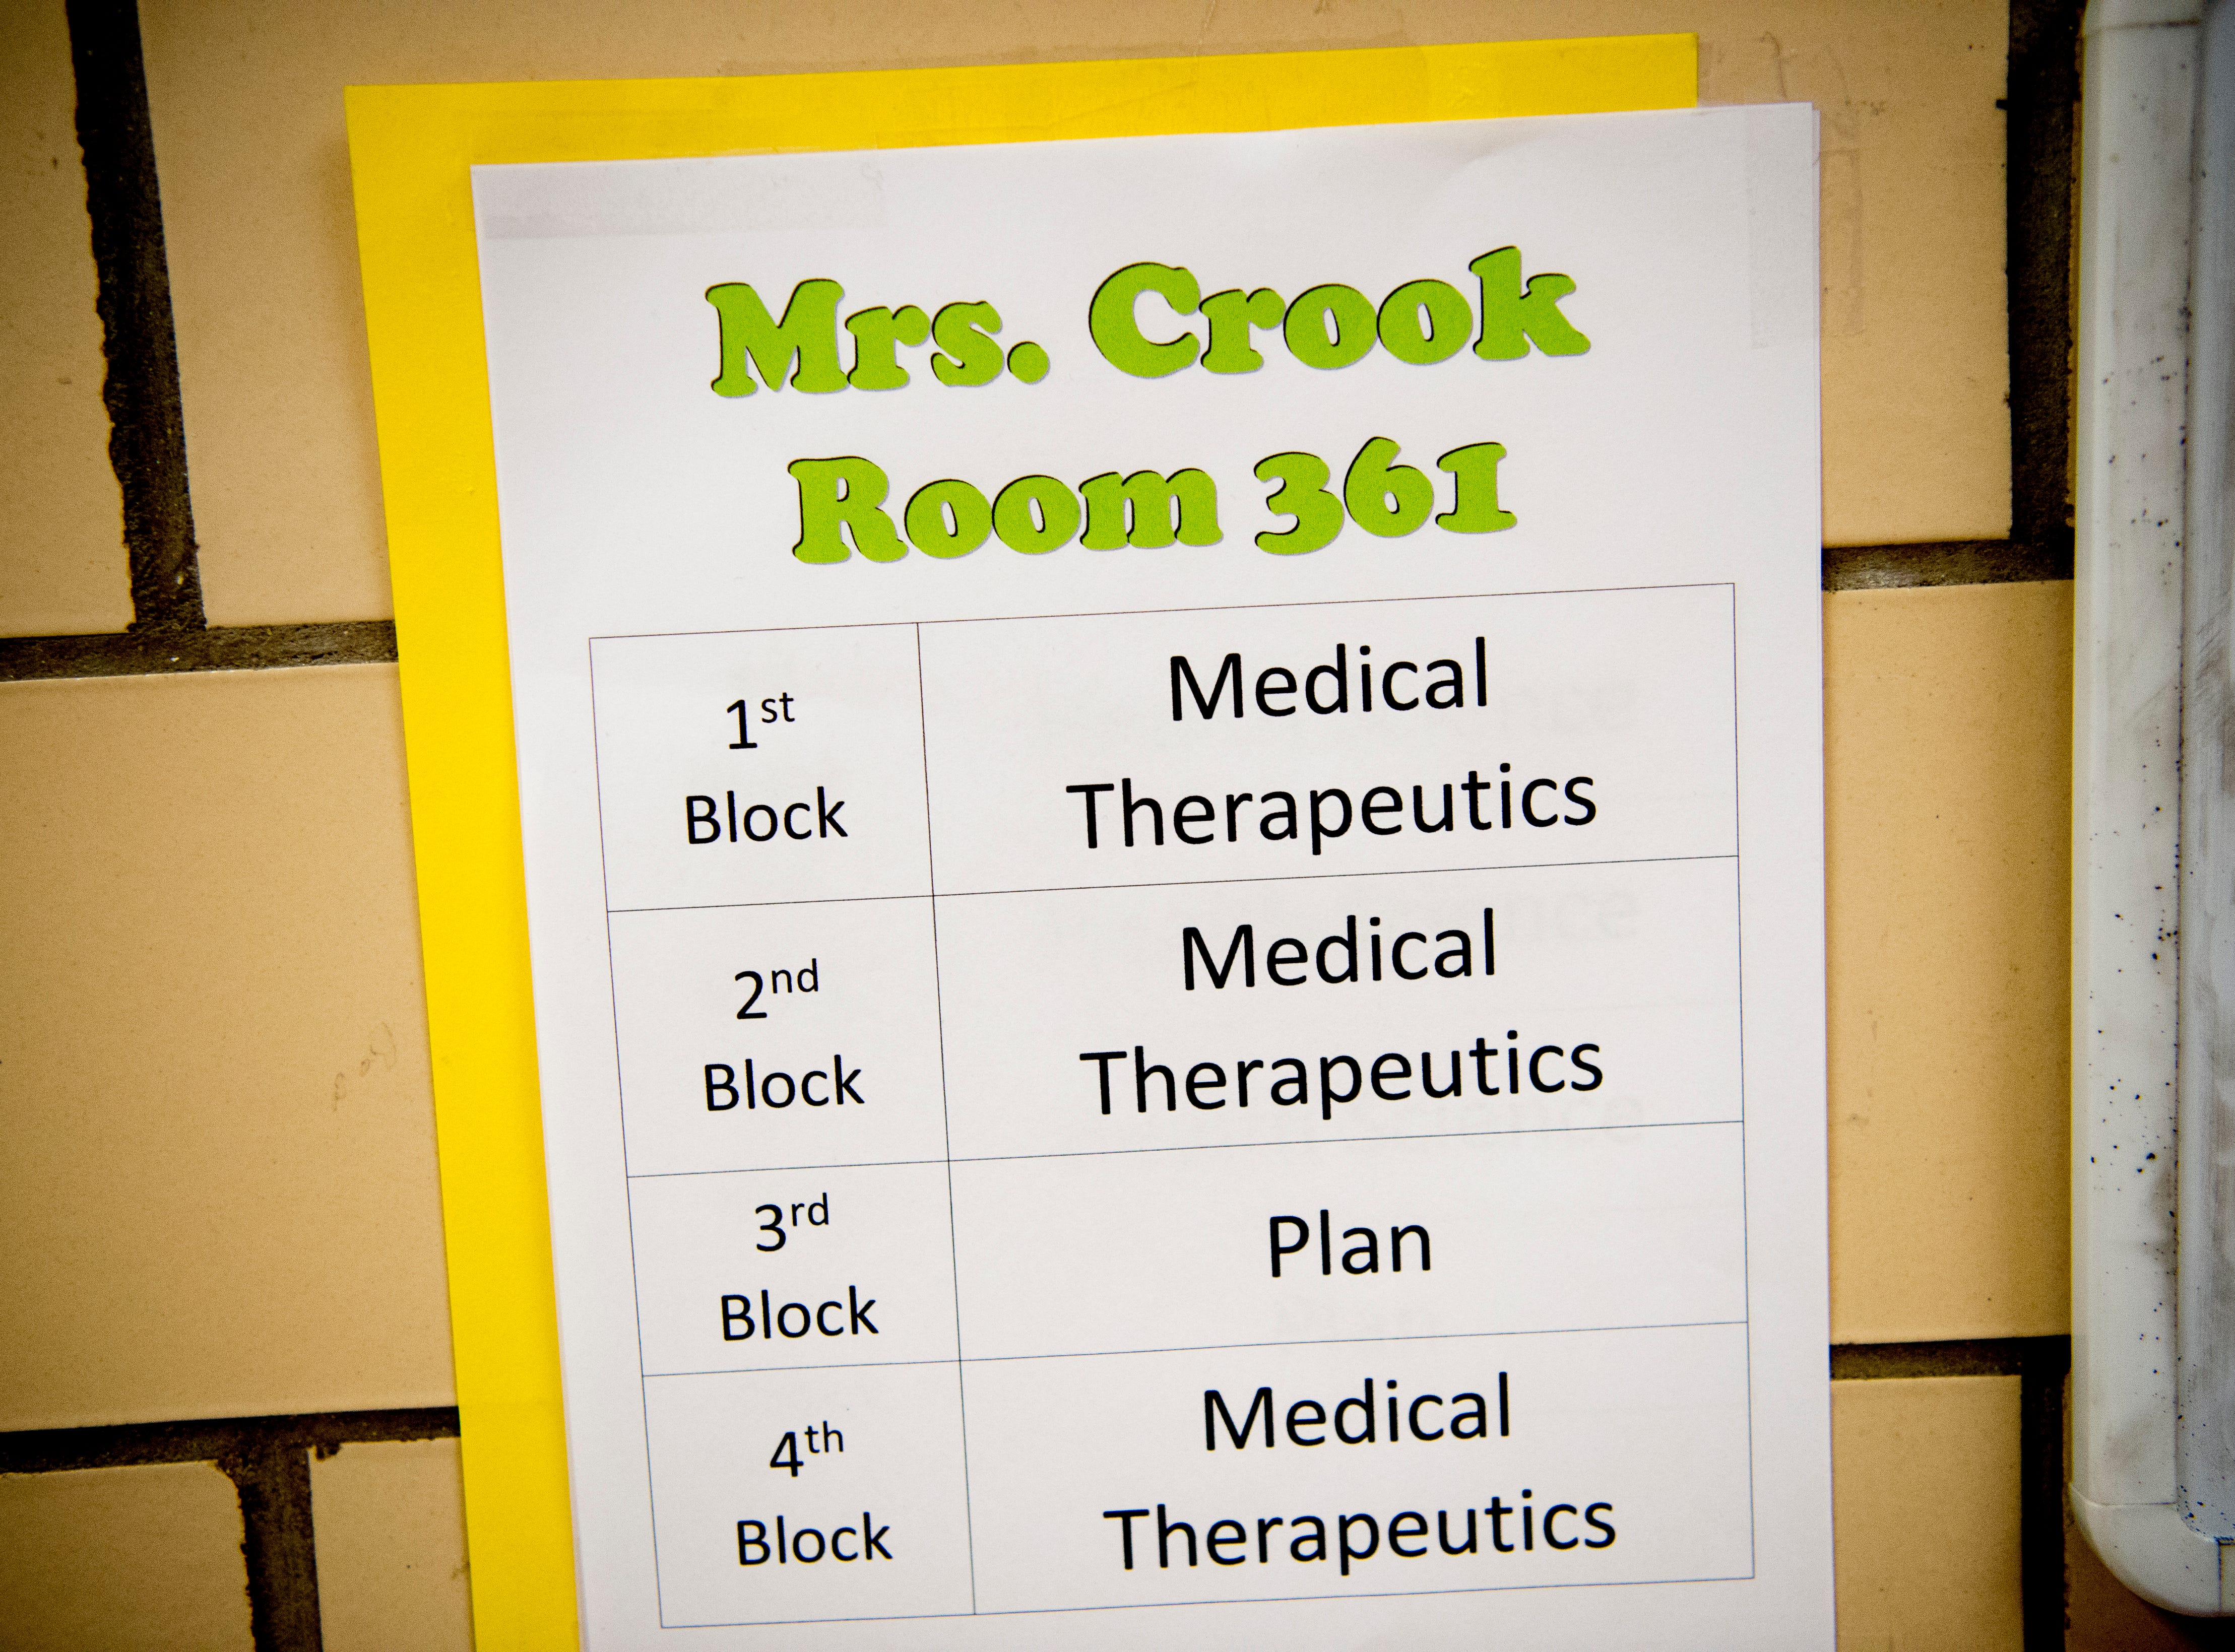 A schedule outside of Anita Crook's medical therapeutics class at Maryville High School in Maryville, Tennessee, on Friday, January 11, 2019. More time with teachers as well as time to study and work on homework are some of the benefits students enjoy when on block schedules.